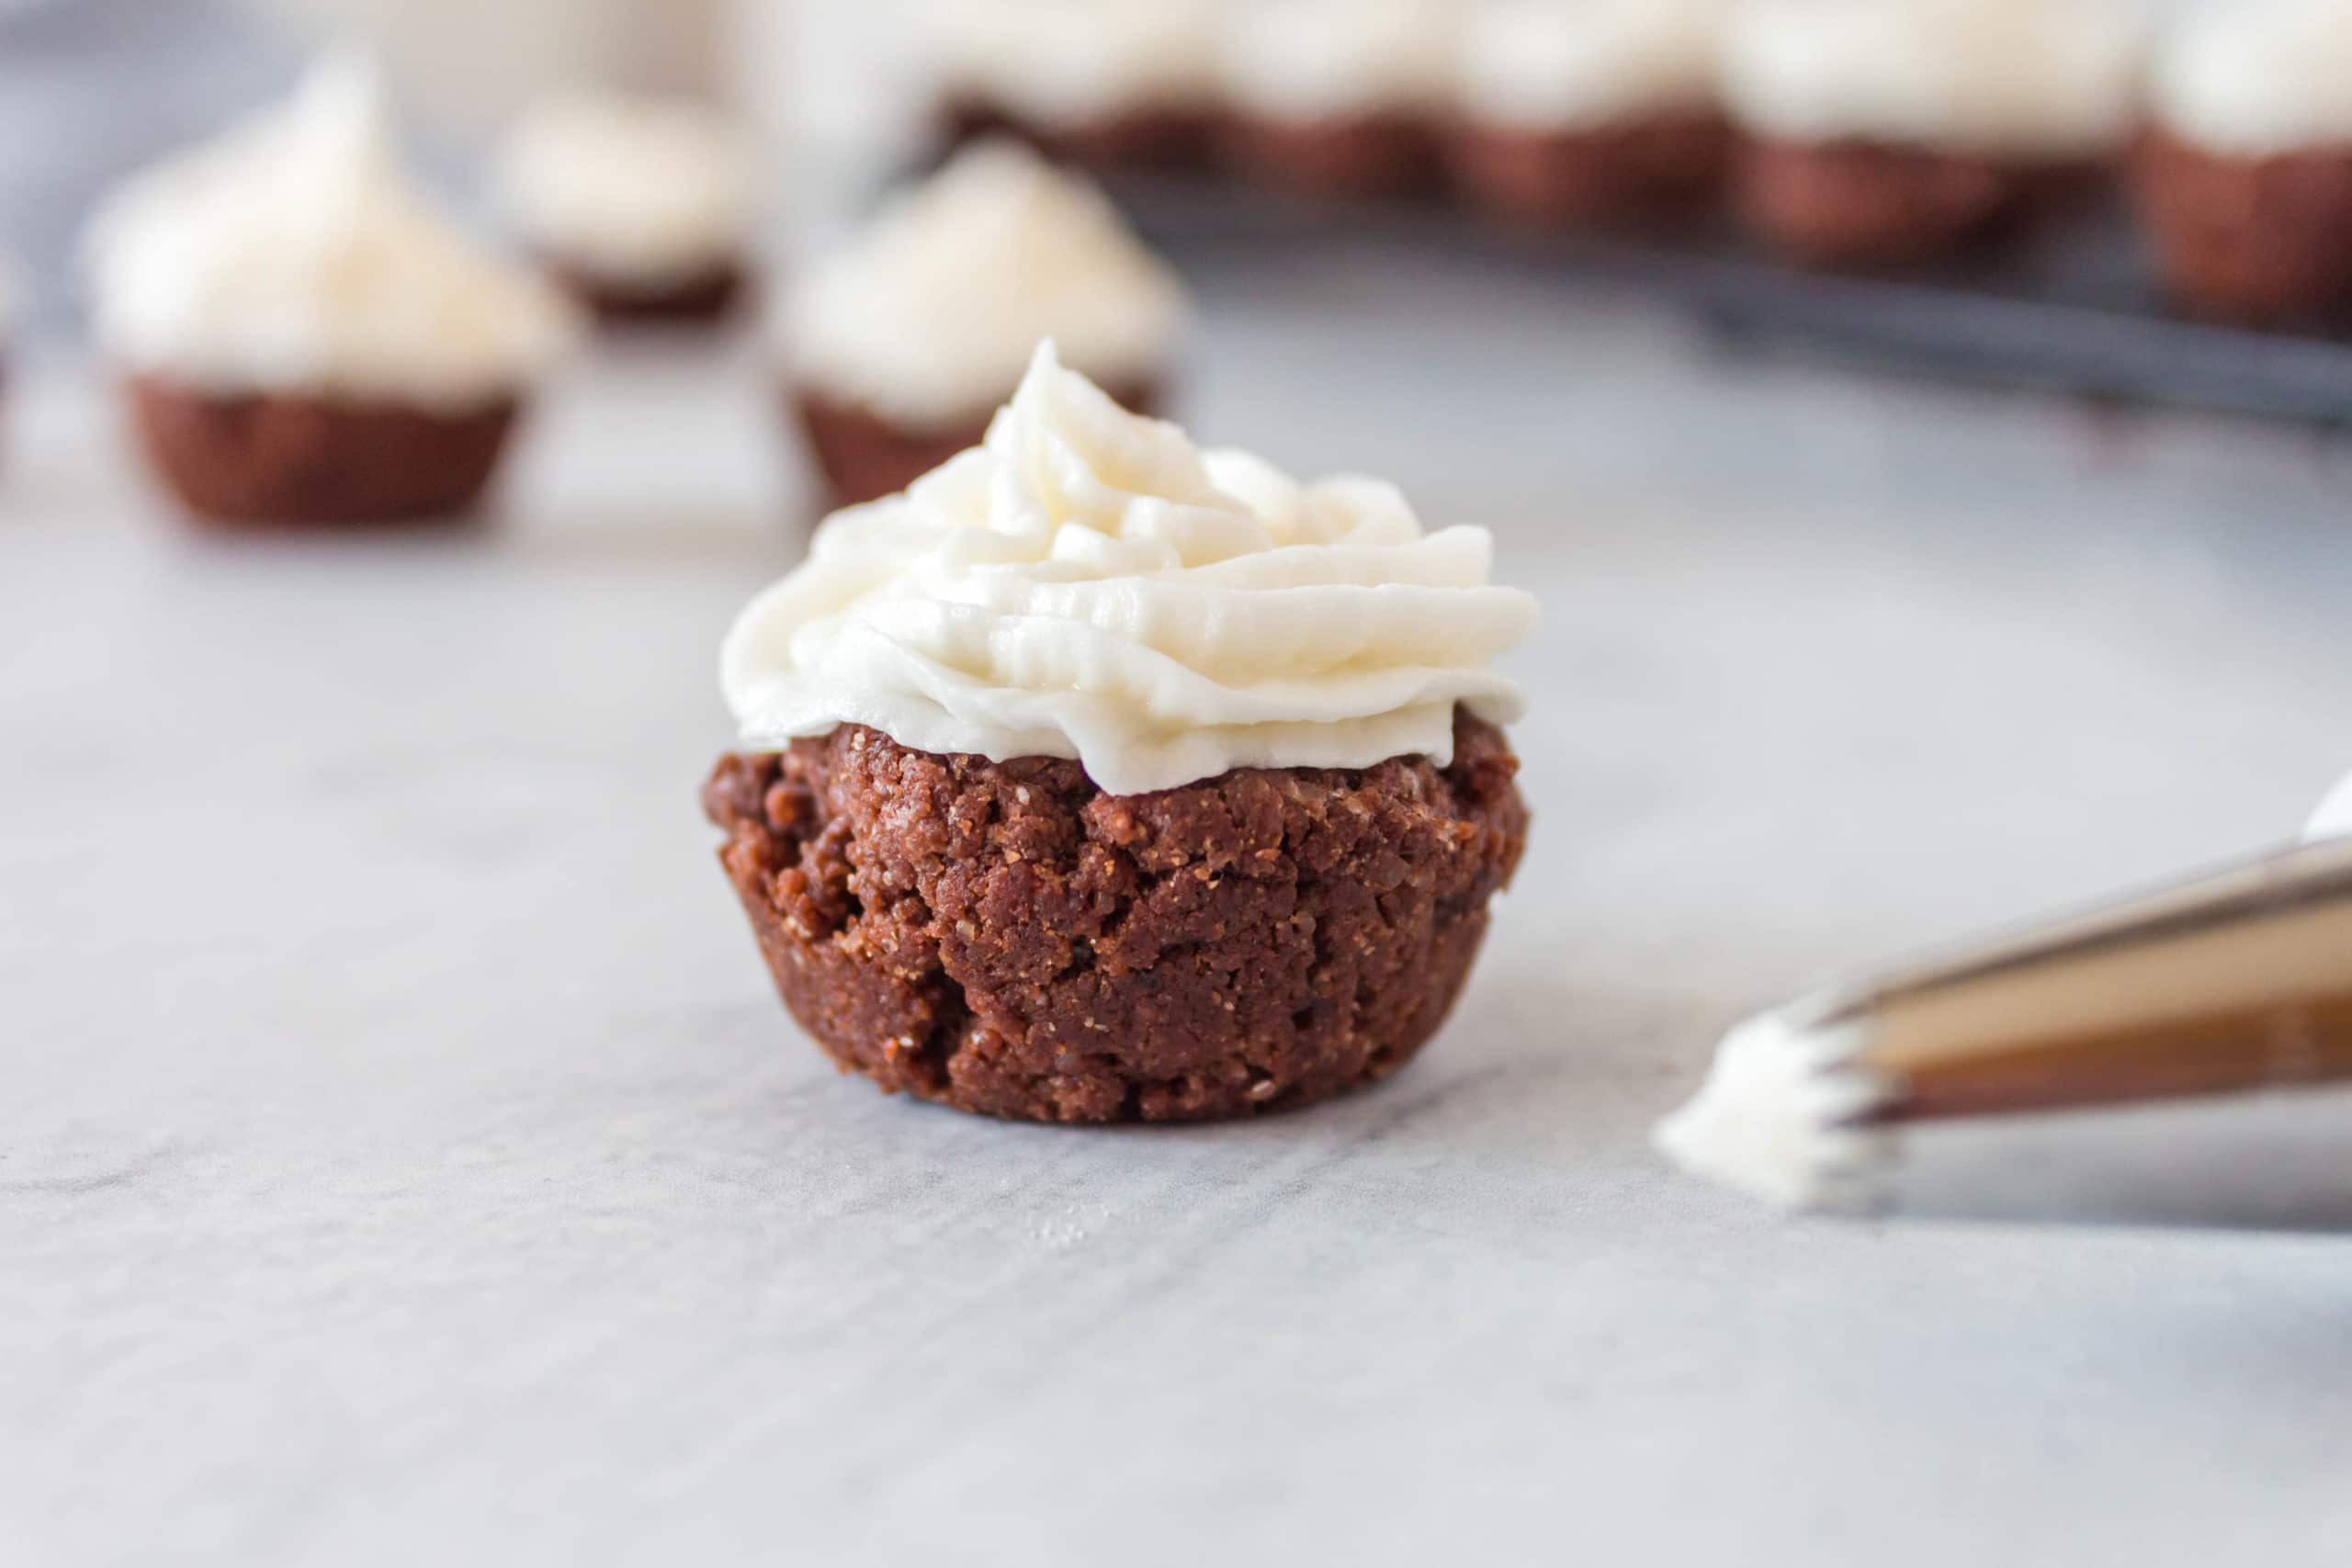 Naturally colored and super delicious, these Red Velvet Cookie Cups from Lauren Kelly Nutrition will be your new favorite holiday treat!